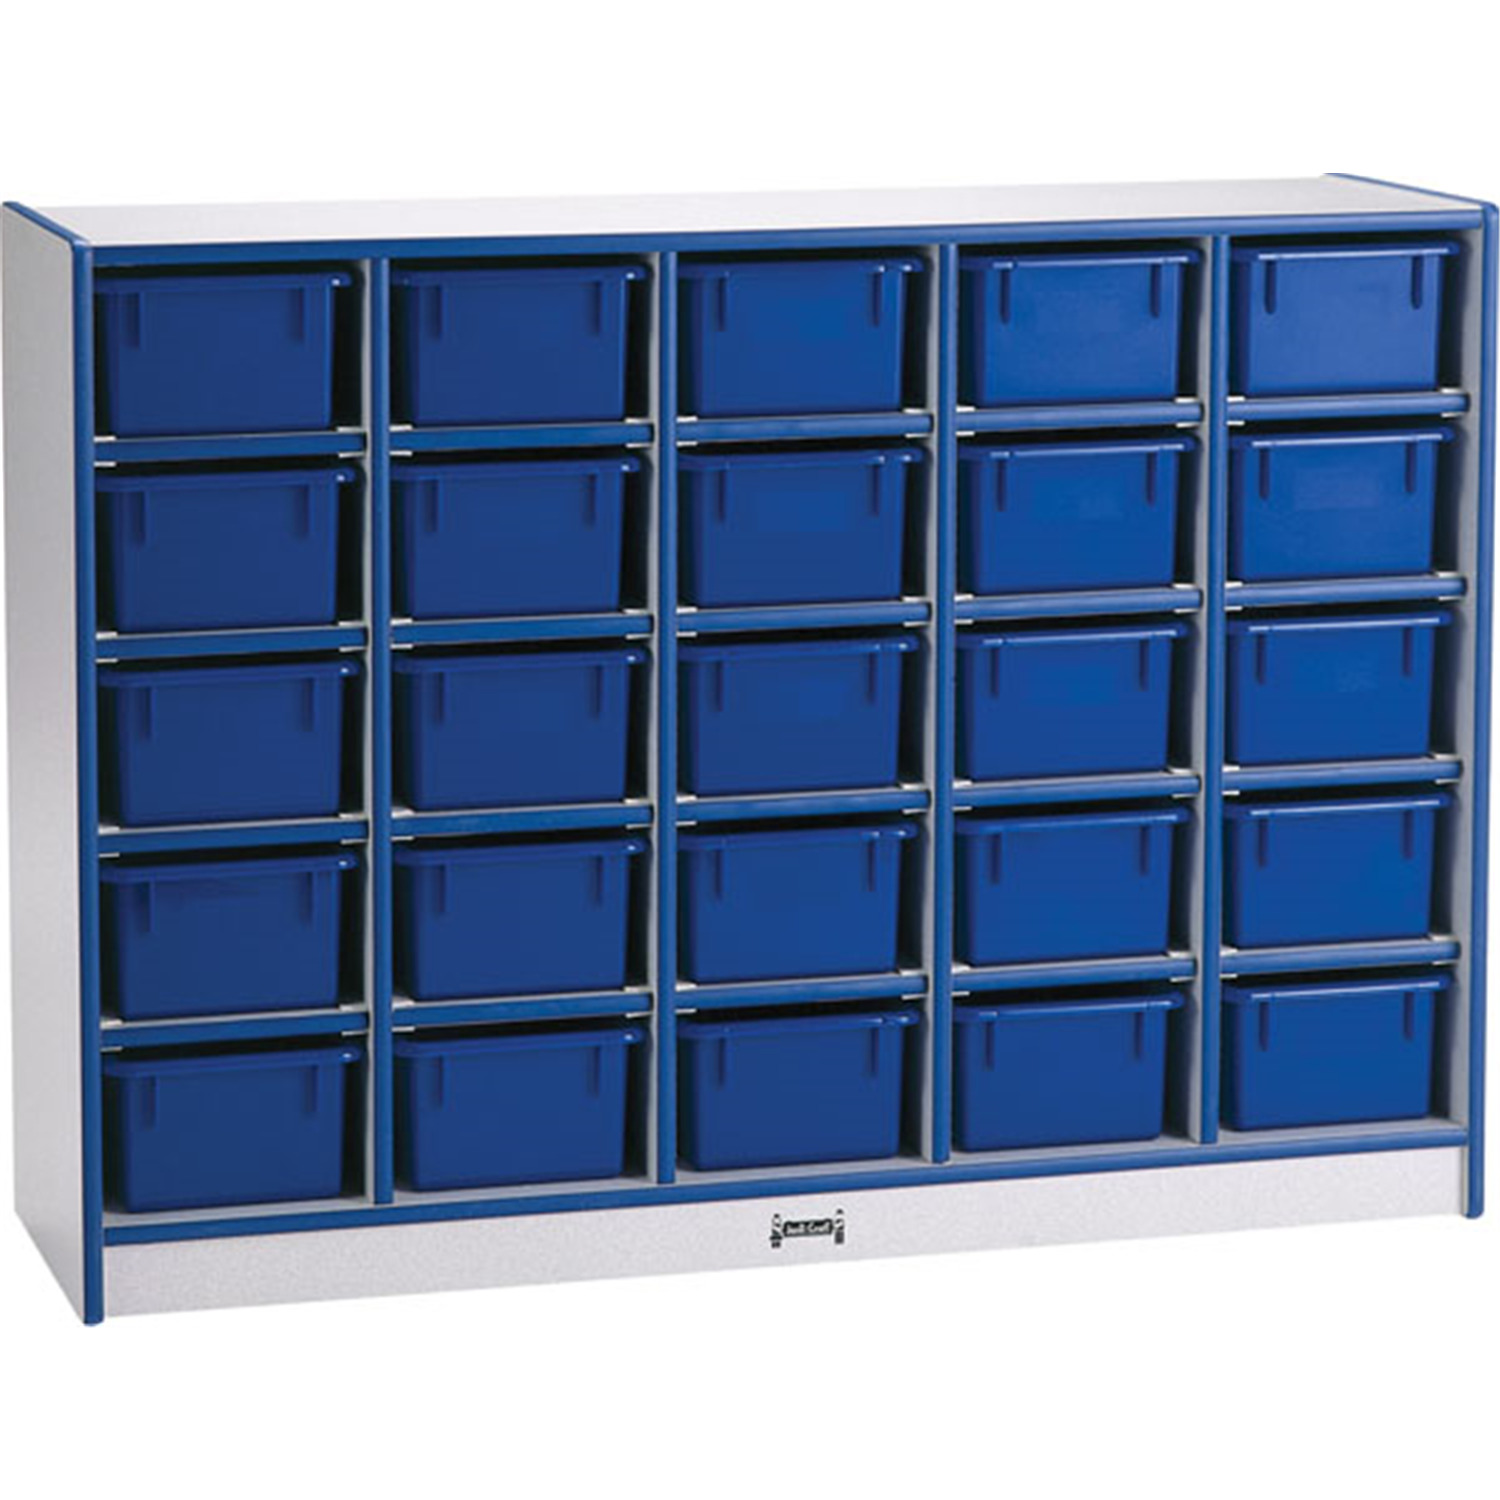 25 Tray Mobile Cubbie Without Trays - [0425JCWW003]